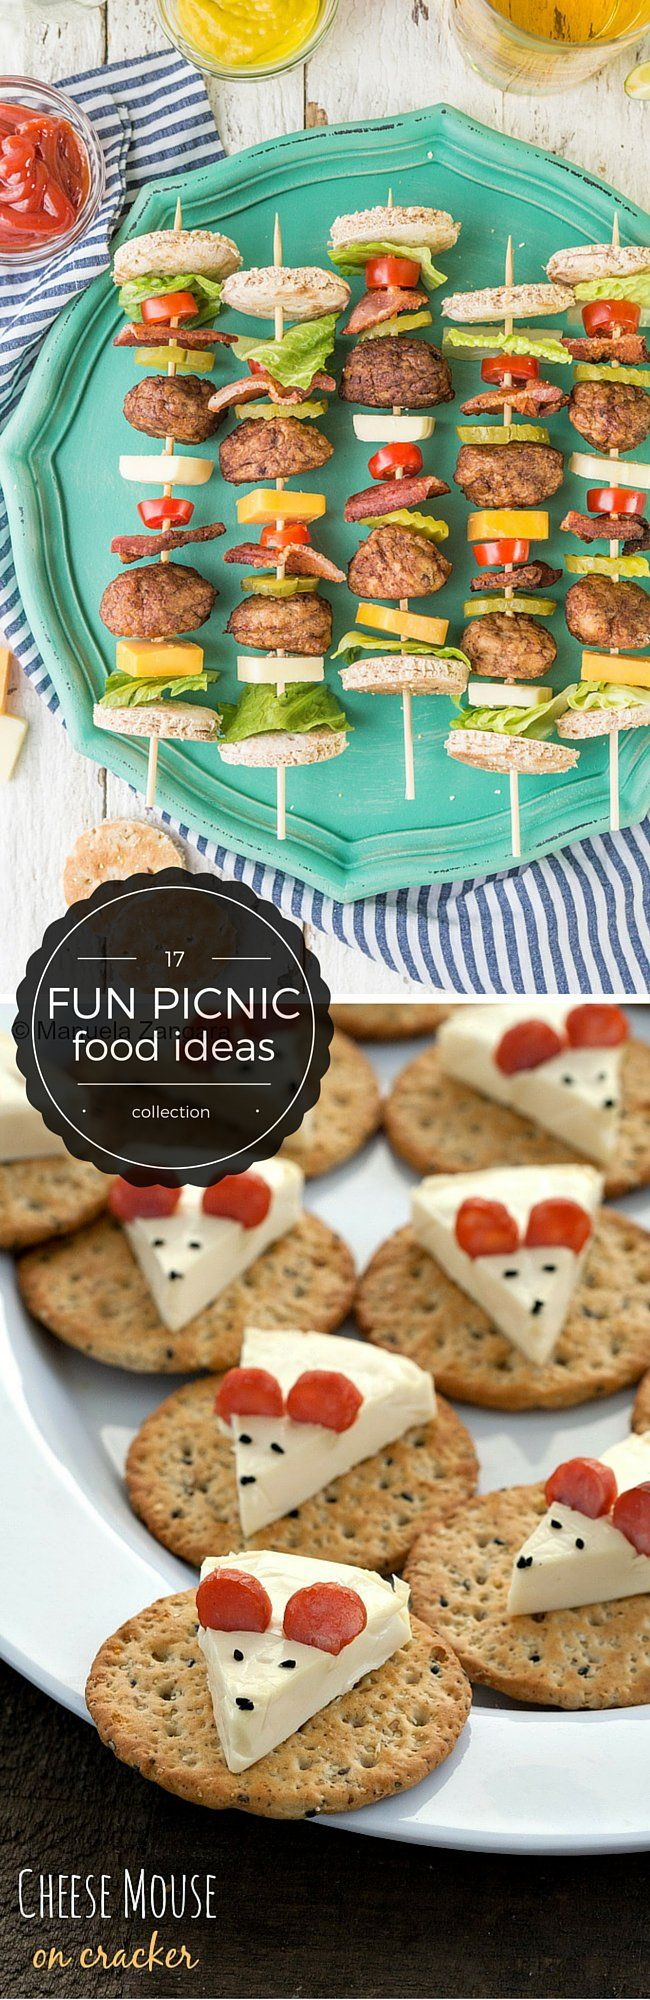 17 Fun Picnic Food Ideas                                                                                                                                                     More